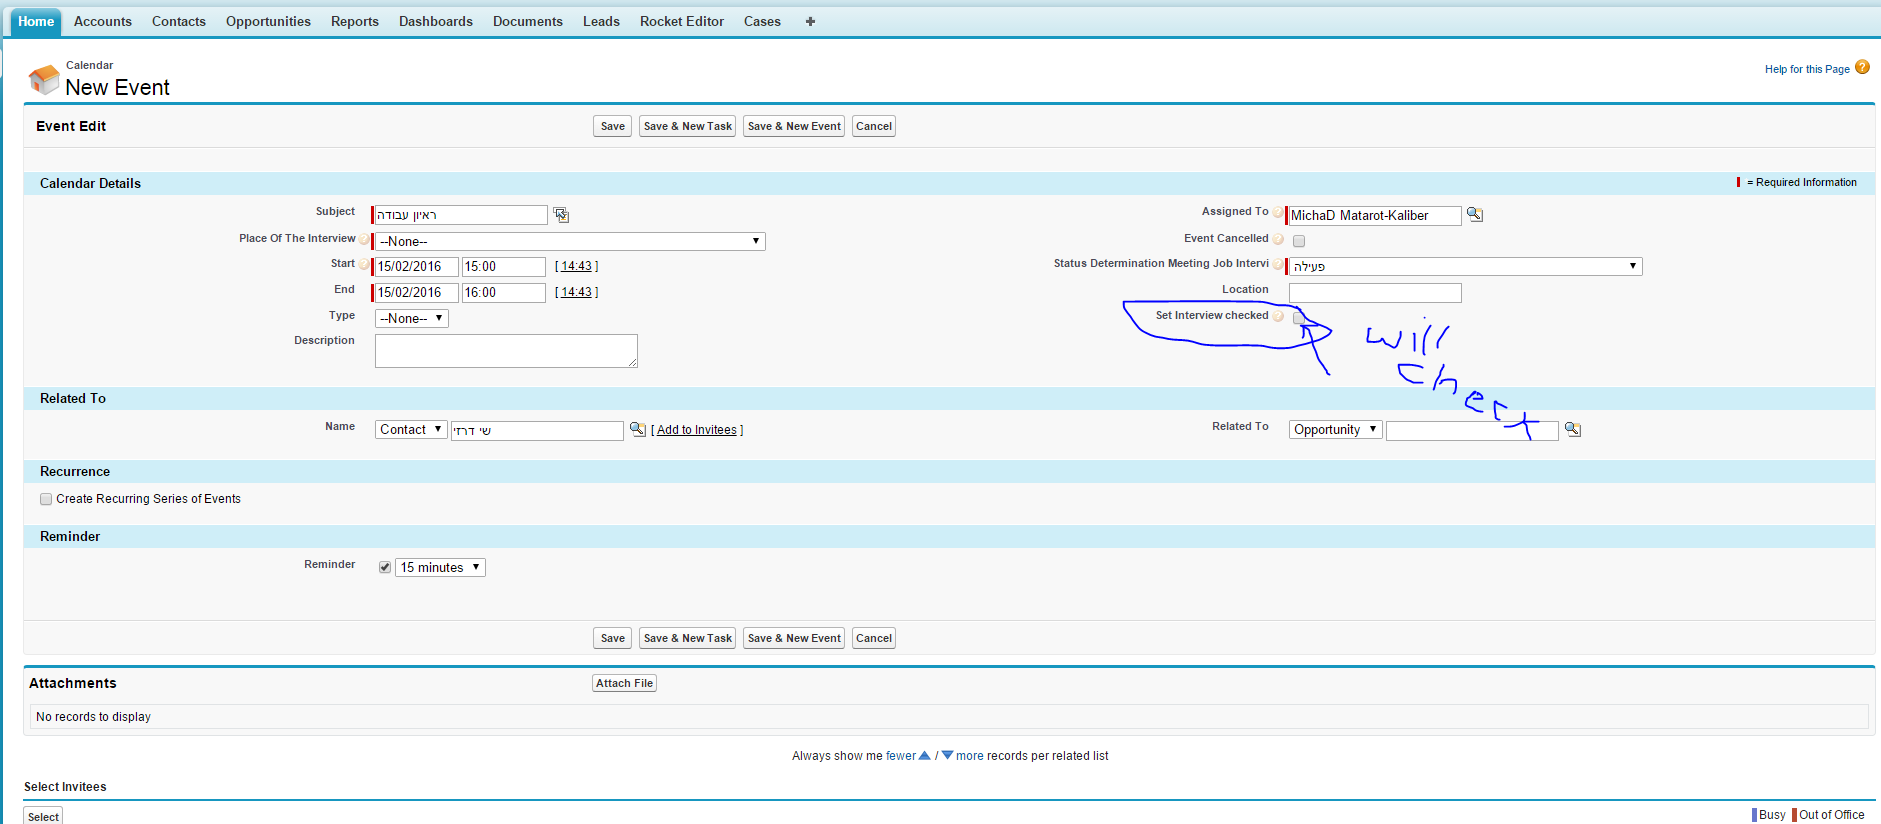 Can't updatep filed of Event on Process-builder - Salesforce